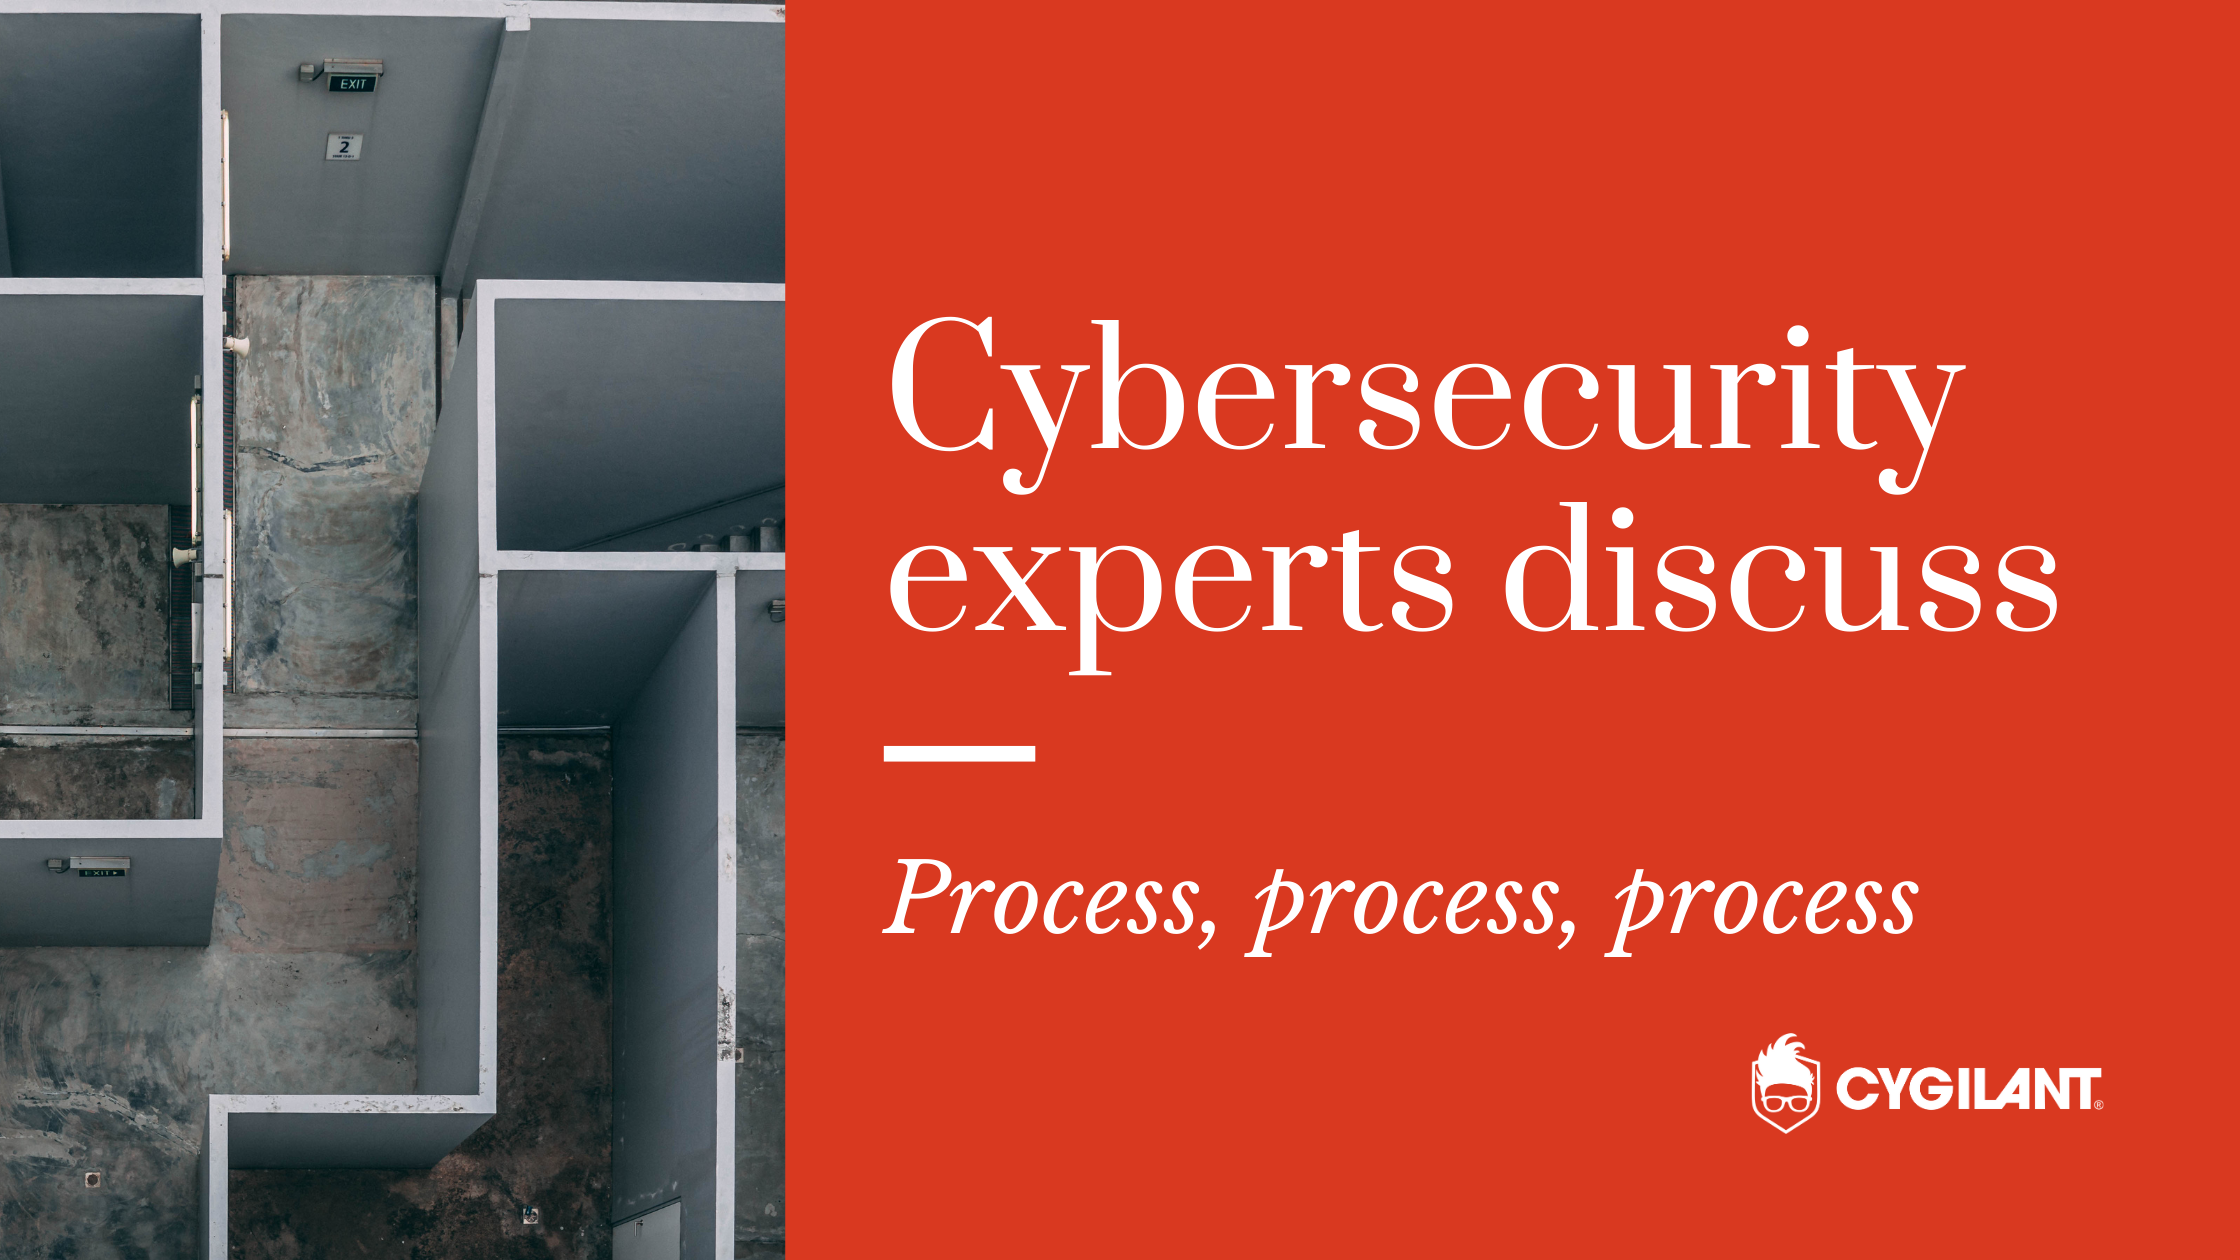 Cybersecurity Experts Discuss: Process, Process, Process